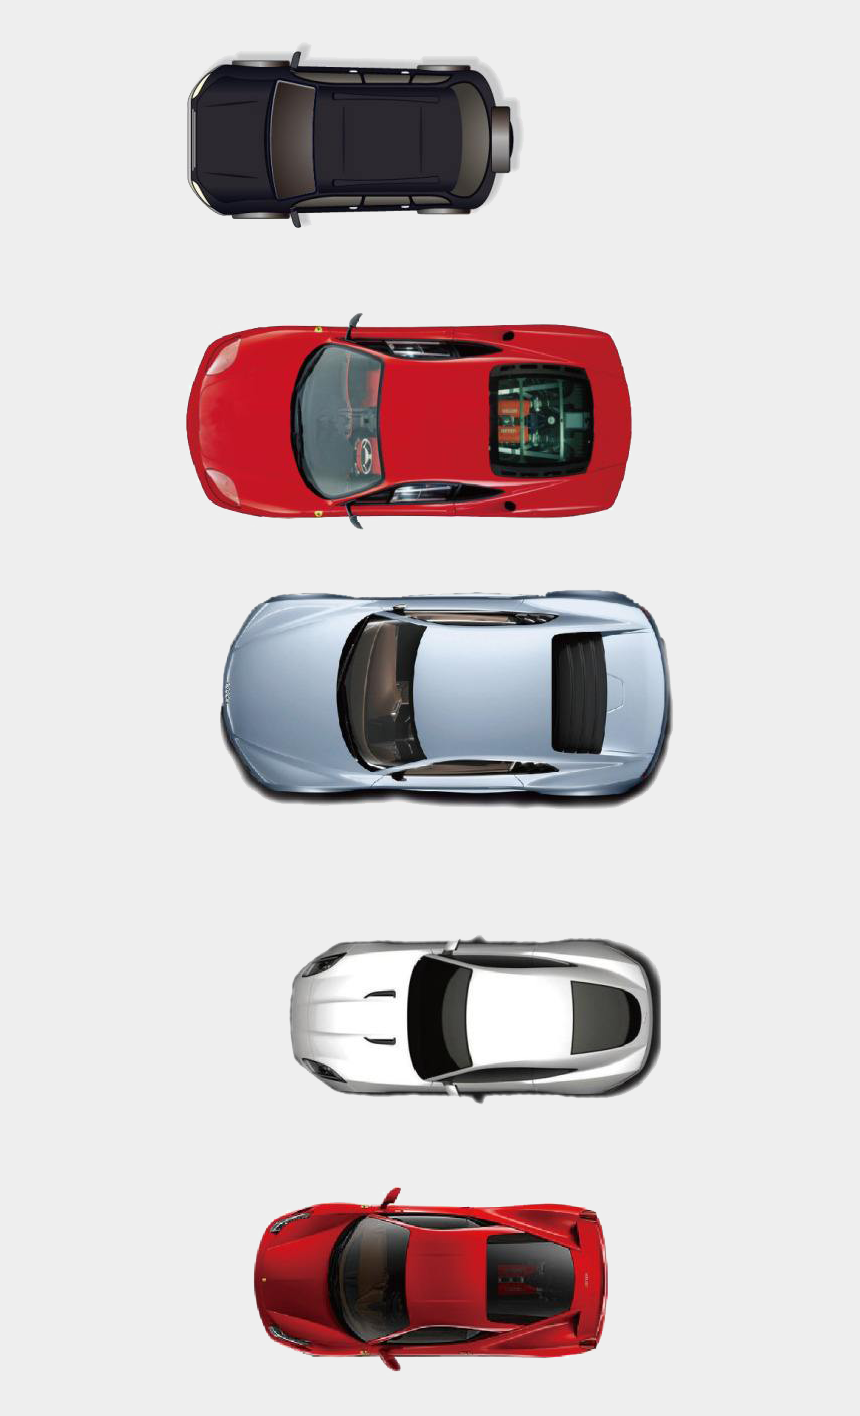 bed clipart top view, Cartoons - Car Top View Hd Image Free Png Clipart - Top View Car Images Png